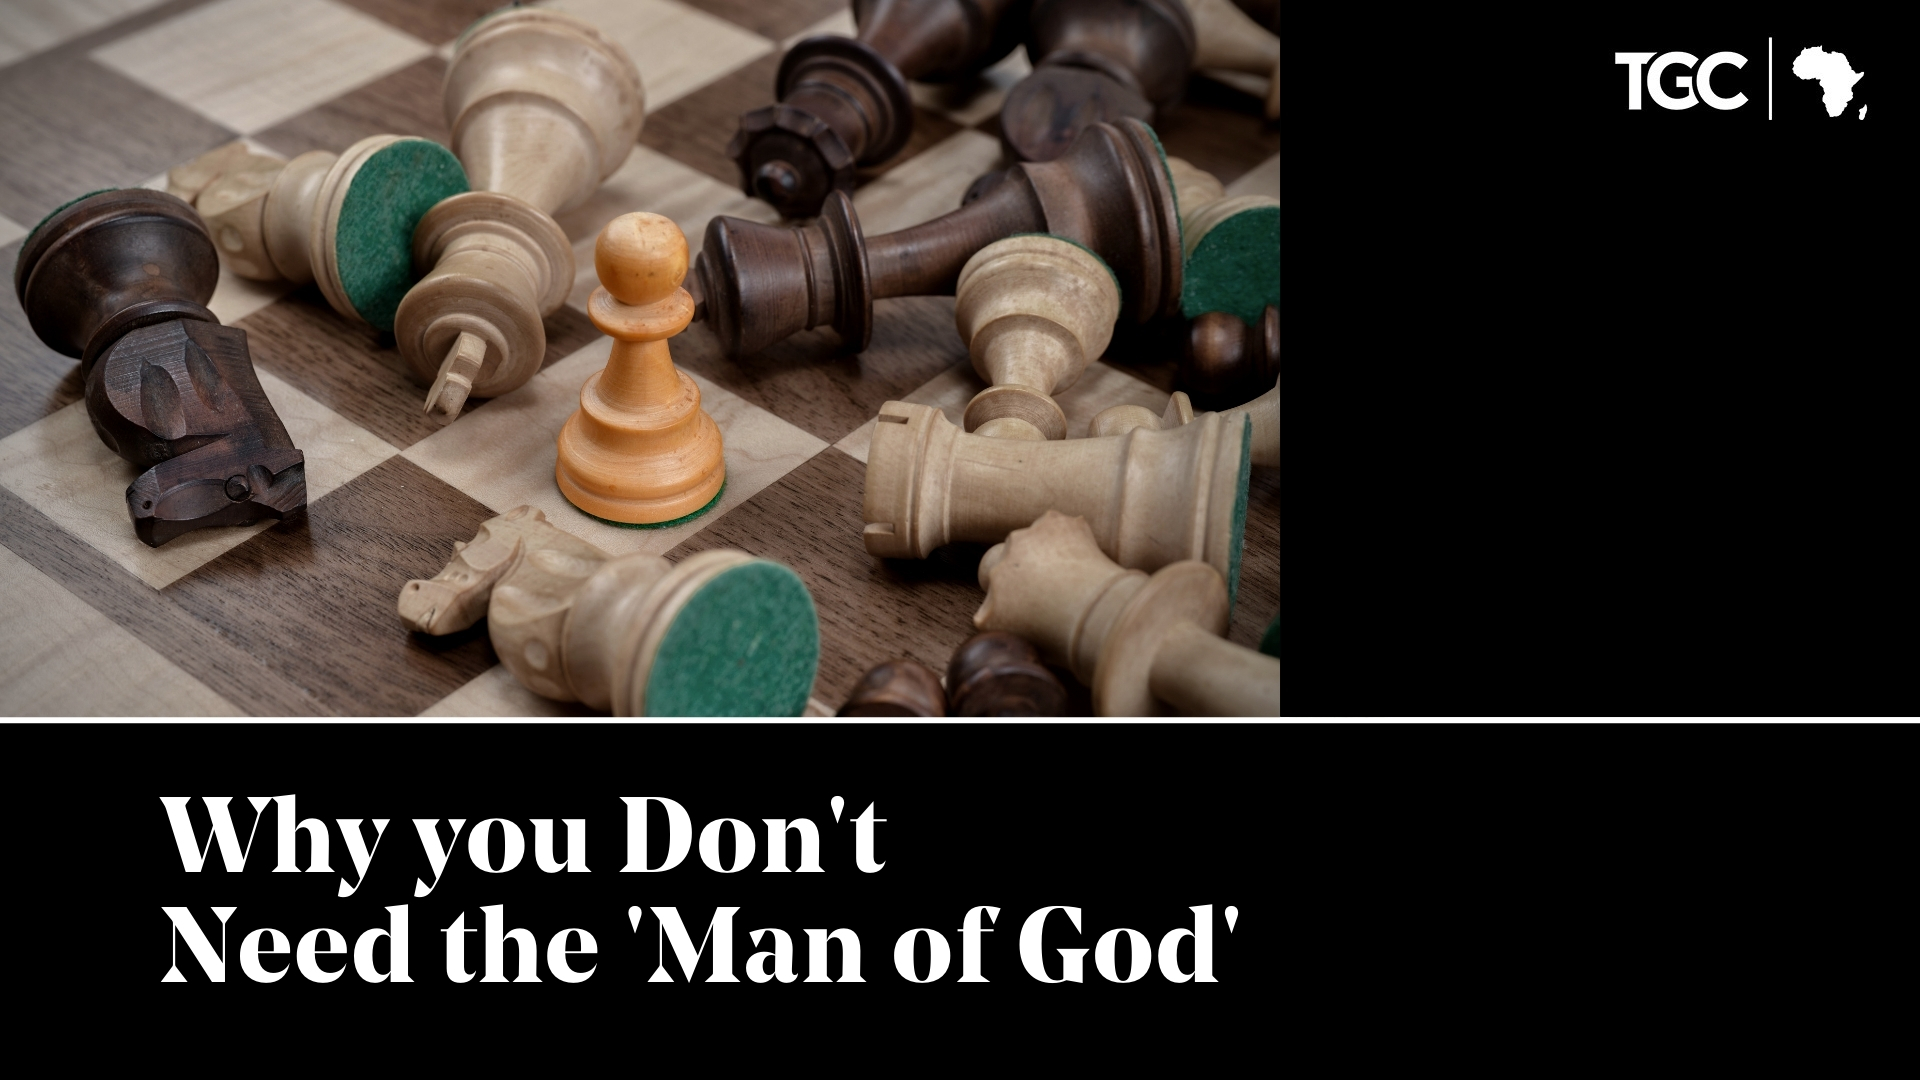 Why you Don't Need the 'Man of God' video cover - chess pieces fallen down around a pawn